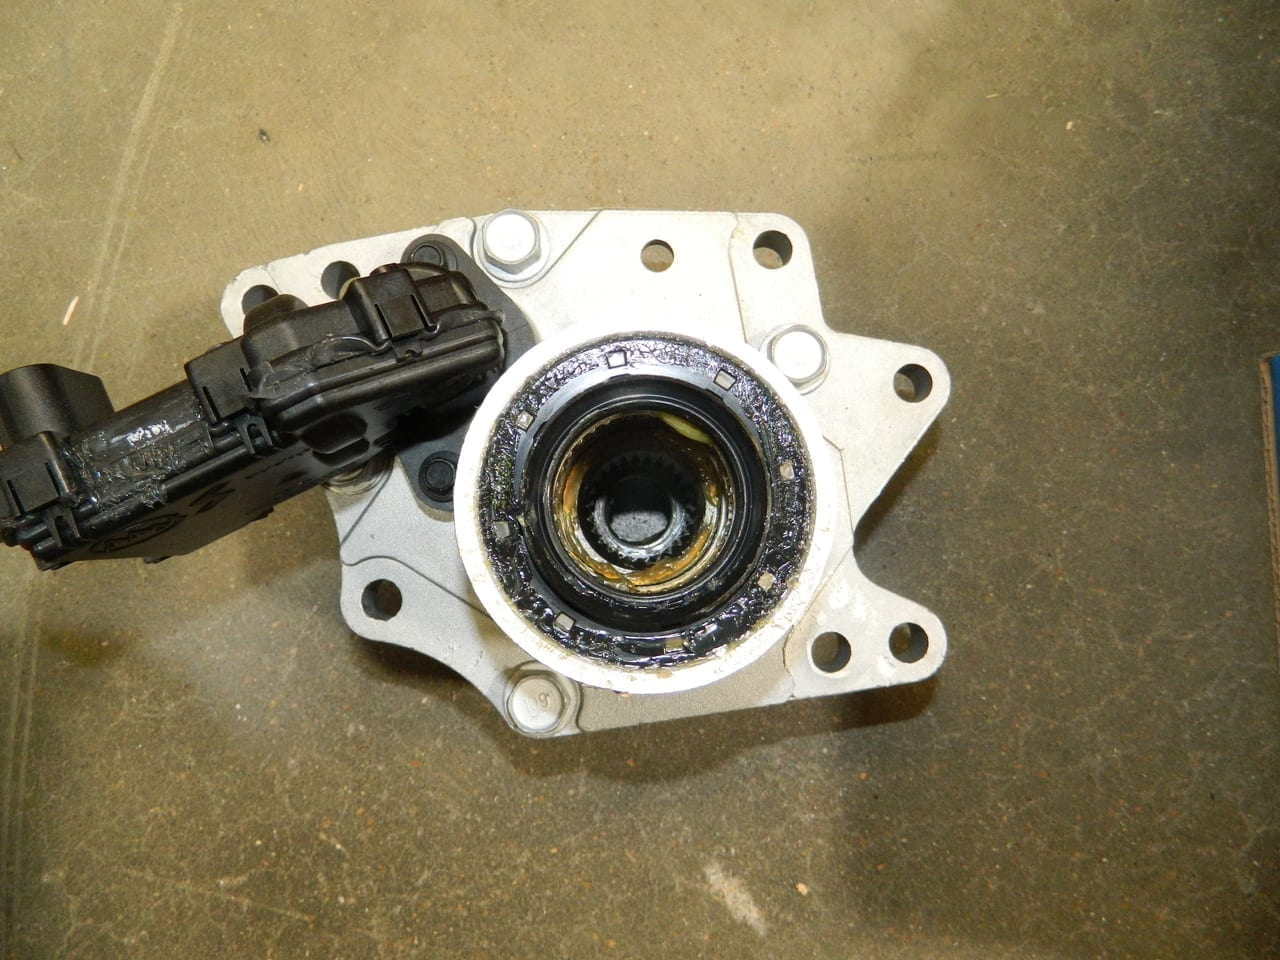 Trailblazer Envoy 2002-2009 4WD Front Axle Disconnect Actuator Oil Pan GM Chevy GMC OEM